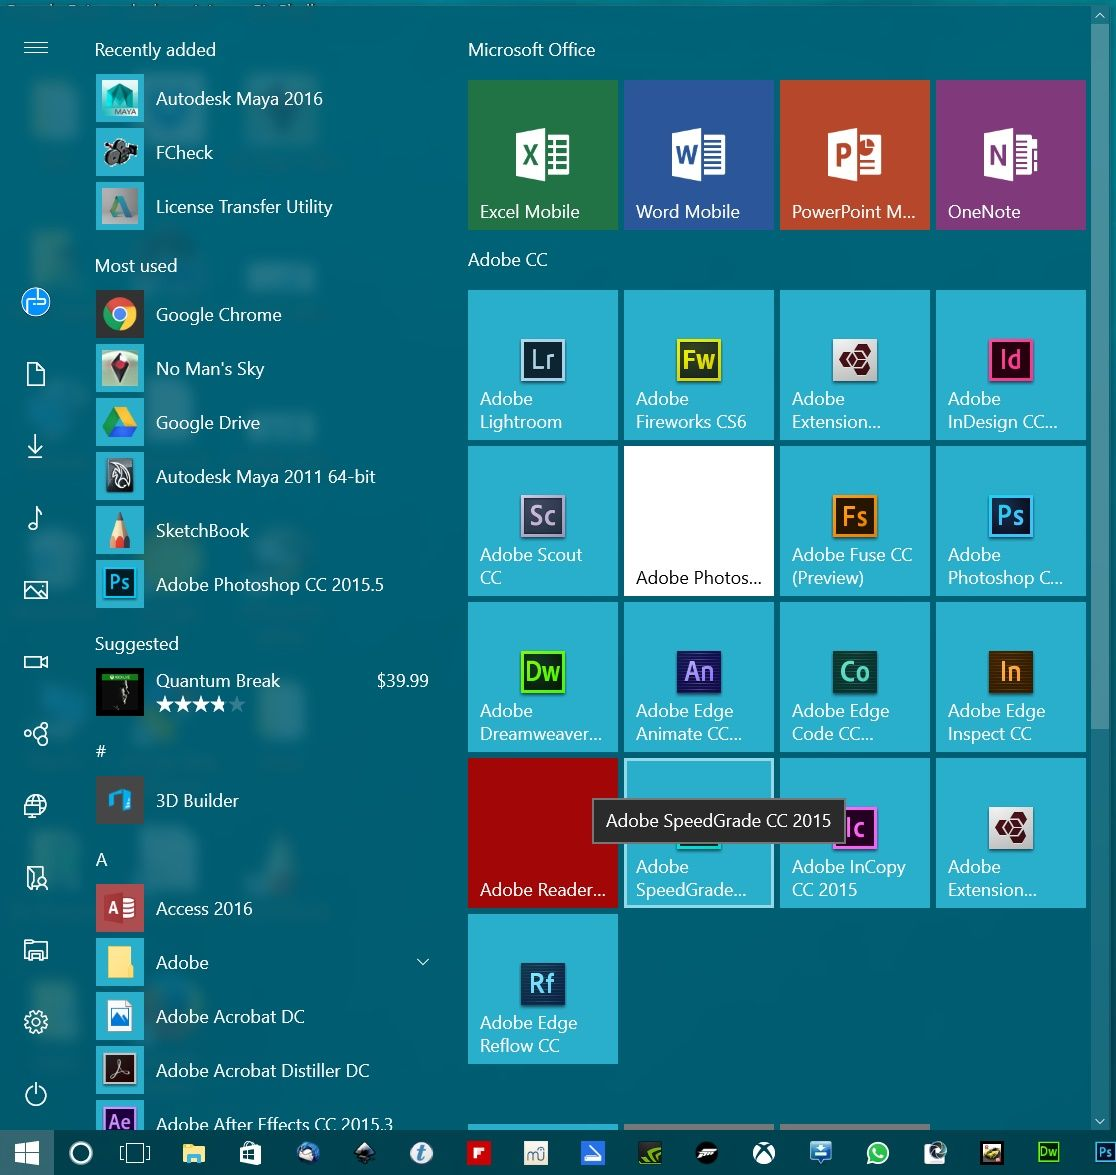 Customize Windows 10 Start Menu To Resemble Windows 7 With Images